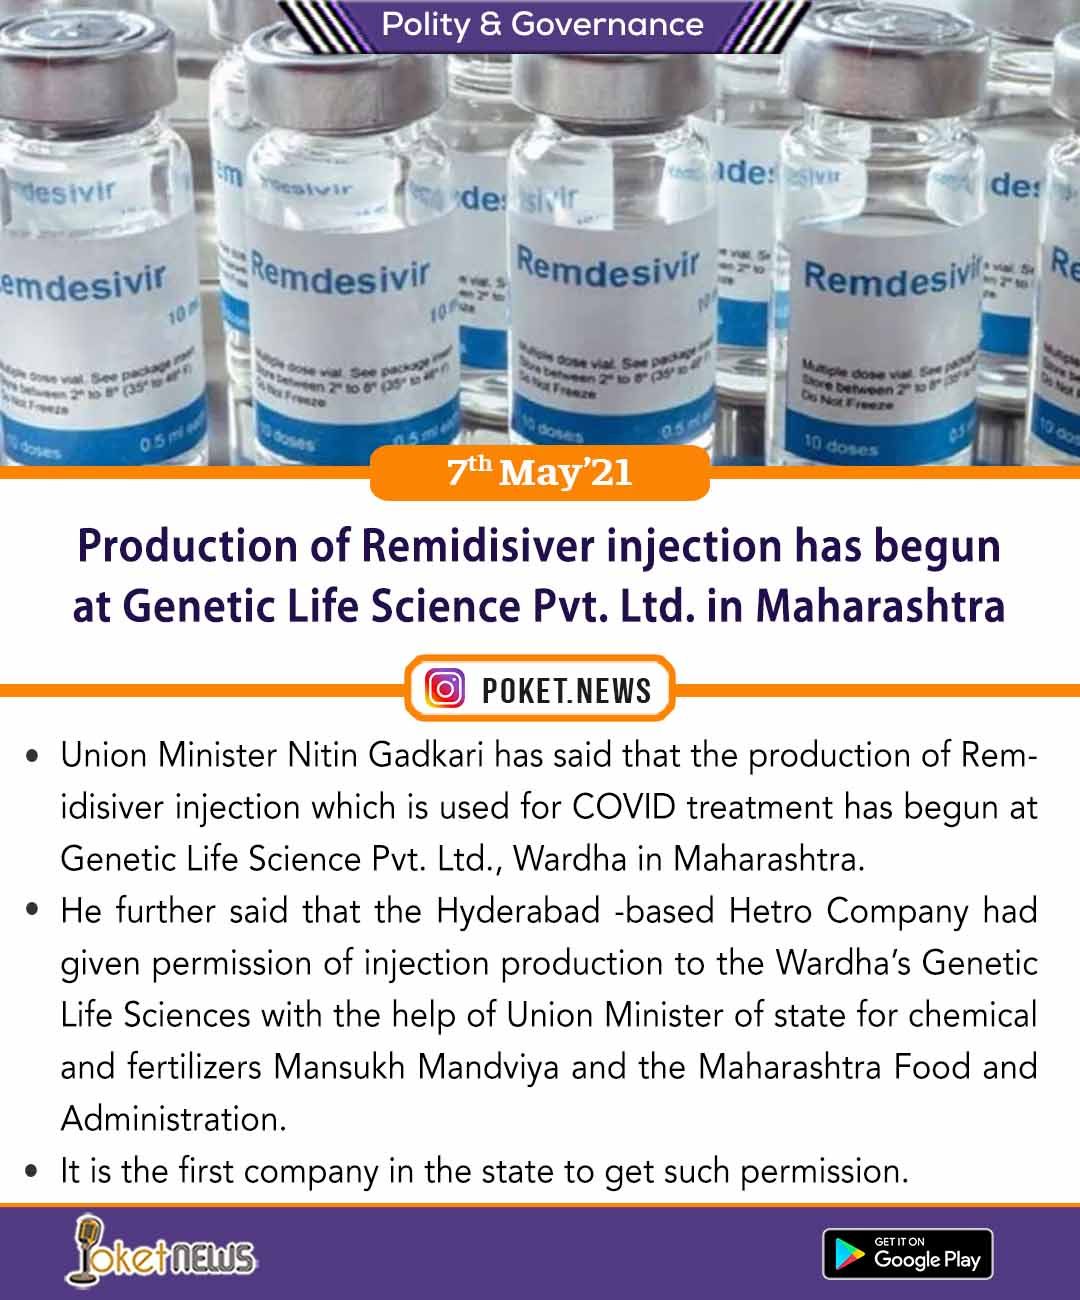 Production of Remidisiver injection has begun at Genetic Life Science Pvt. Ltd. in Maharashtra